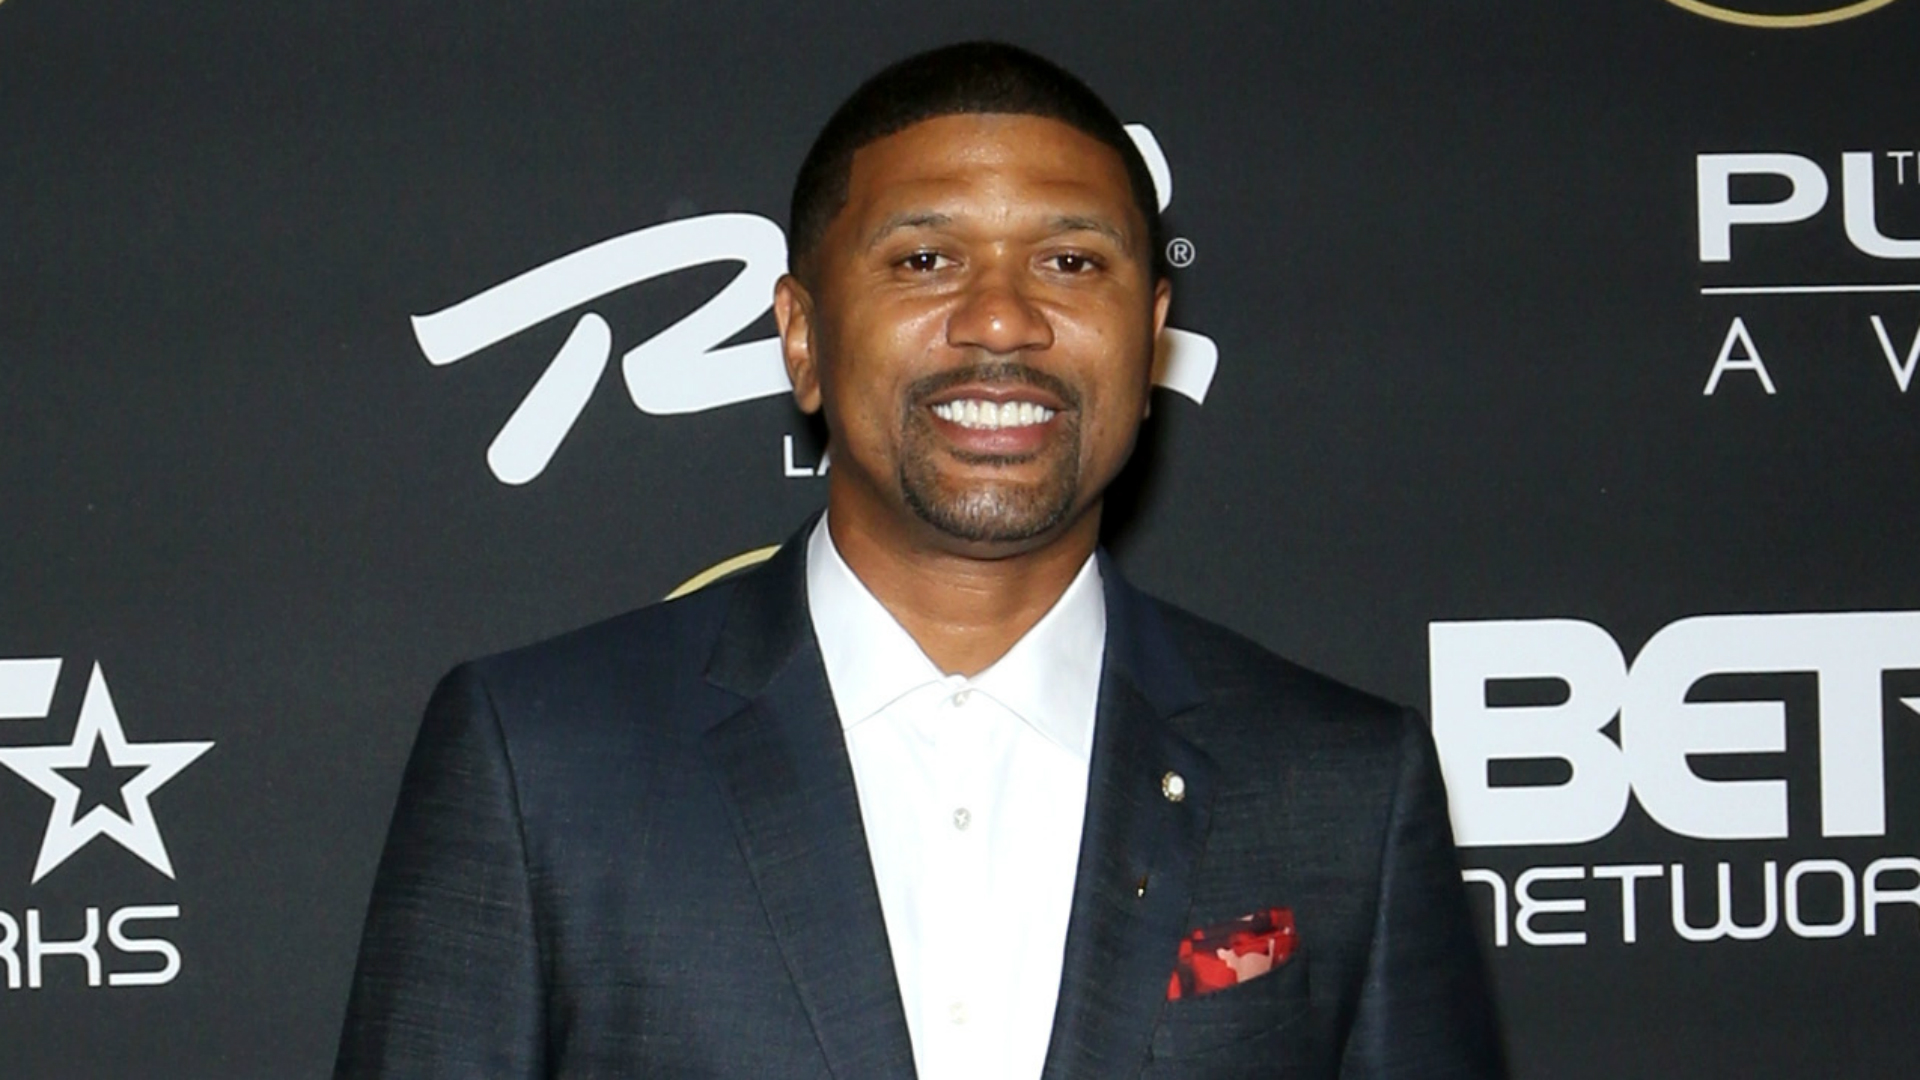 ESPN Will Air Jalen Rose's Passed-over ABC Pilot, For Some Reason